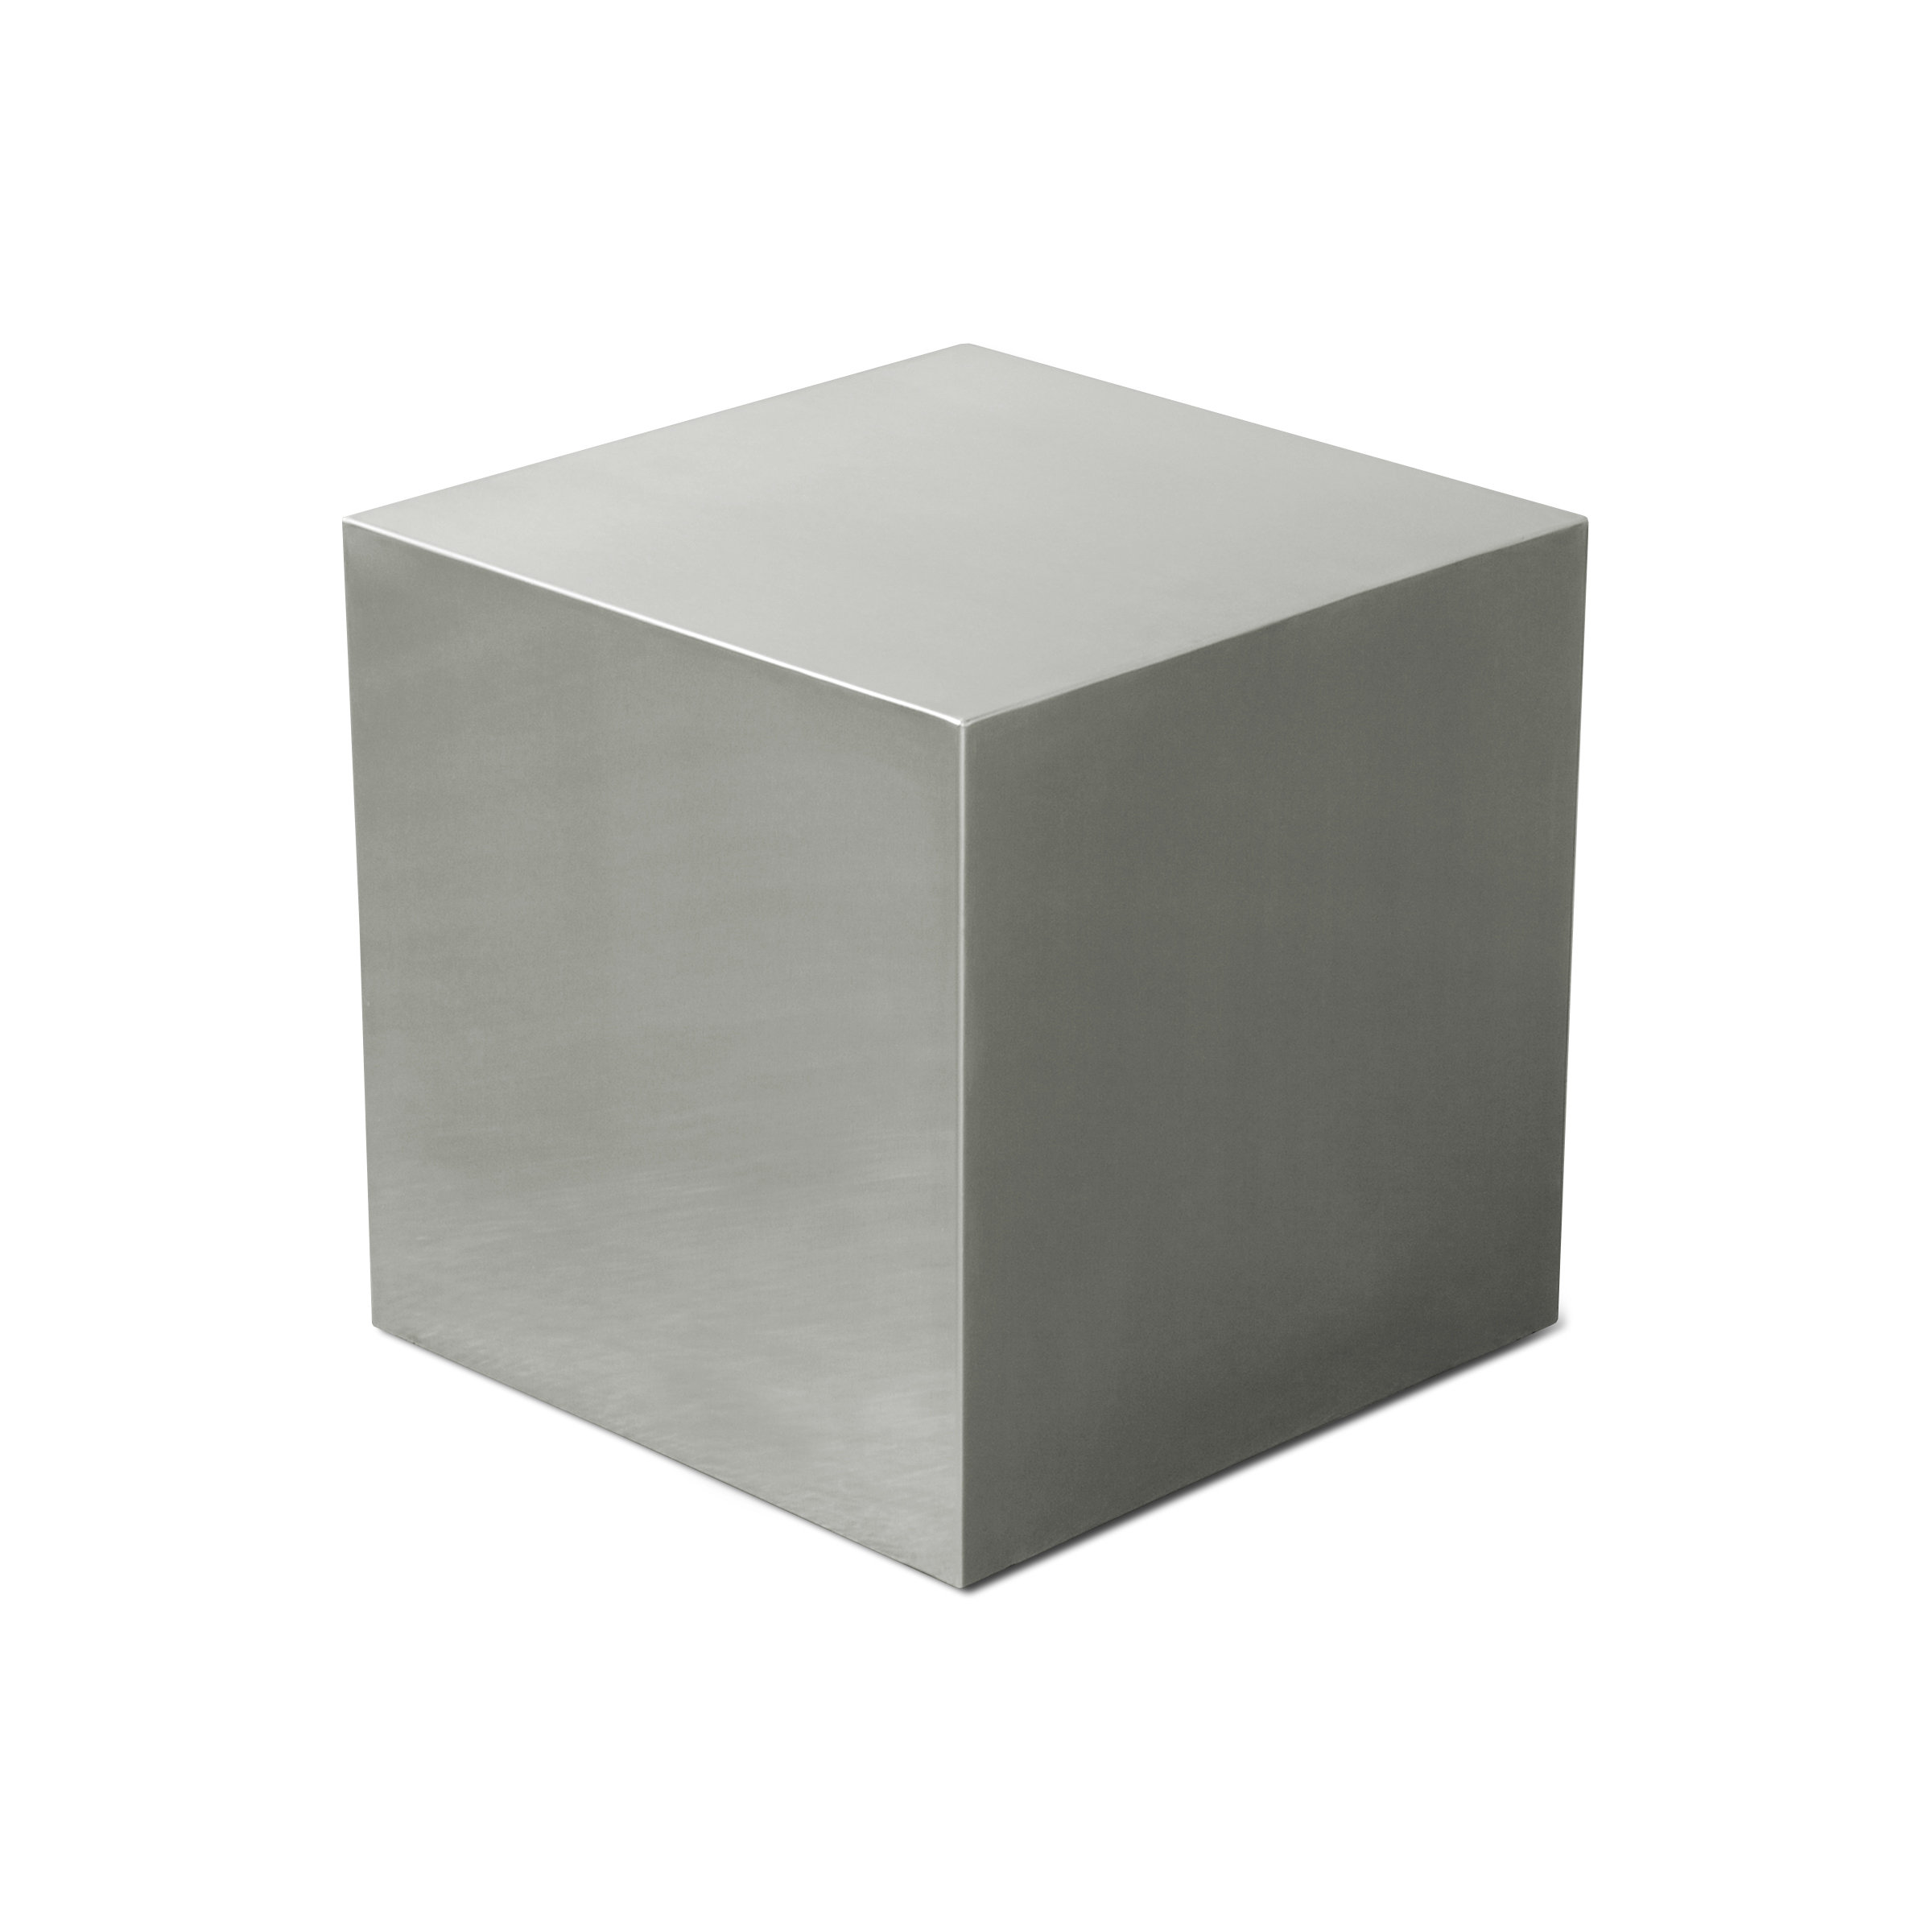 gus modern stainless steel cube end table reviews black our sites lamps and floor round nic liberty furniture showroom large double dog crate circle nightstand marble top coffee